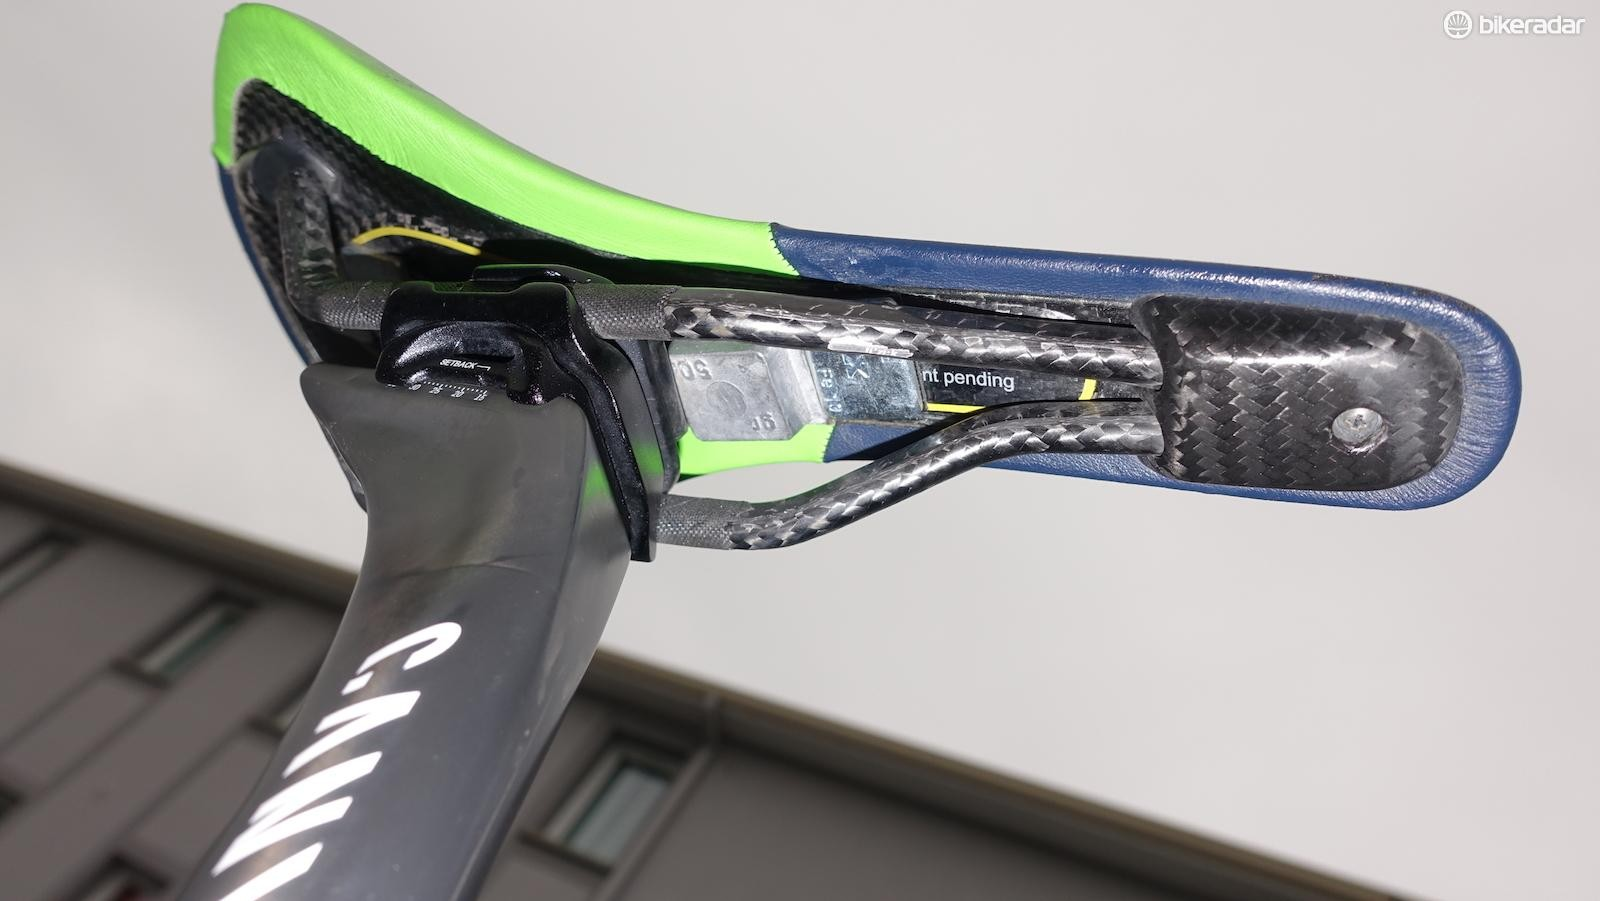 To meet the UCI minimum bike weight of 6.8kg, mechanics glued lead weights to the underside of his saddle